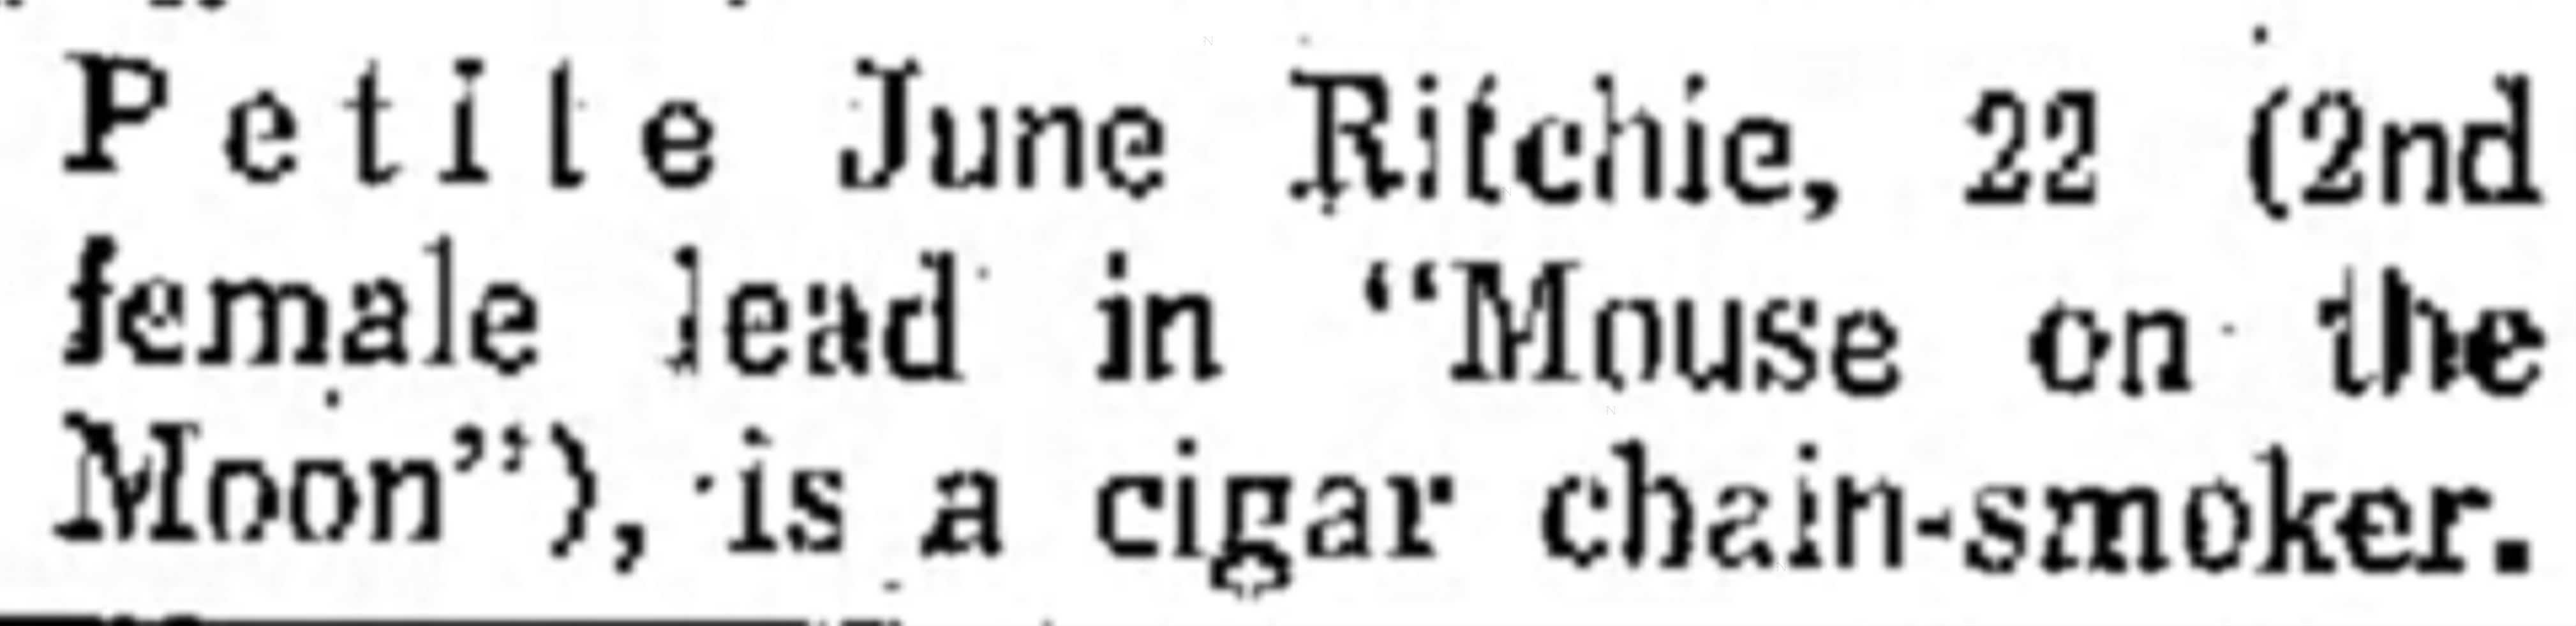 June Ritchie cigar smoker